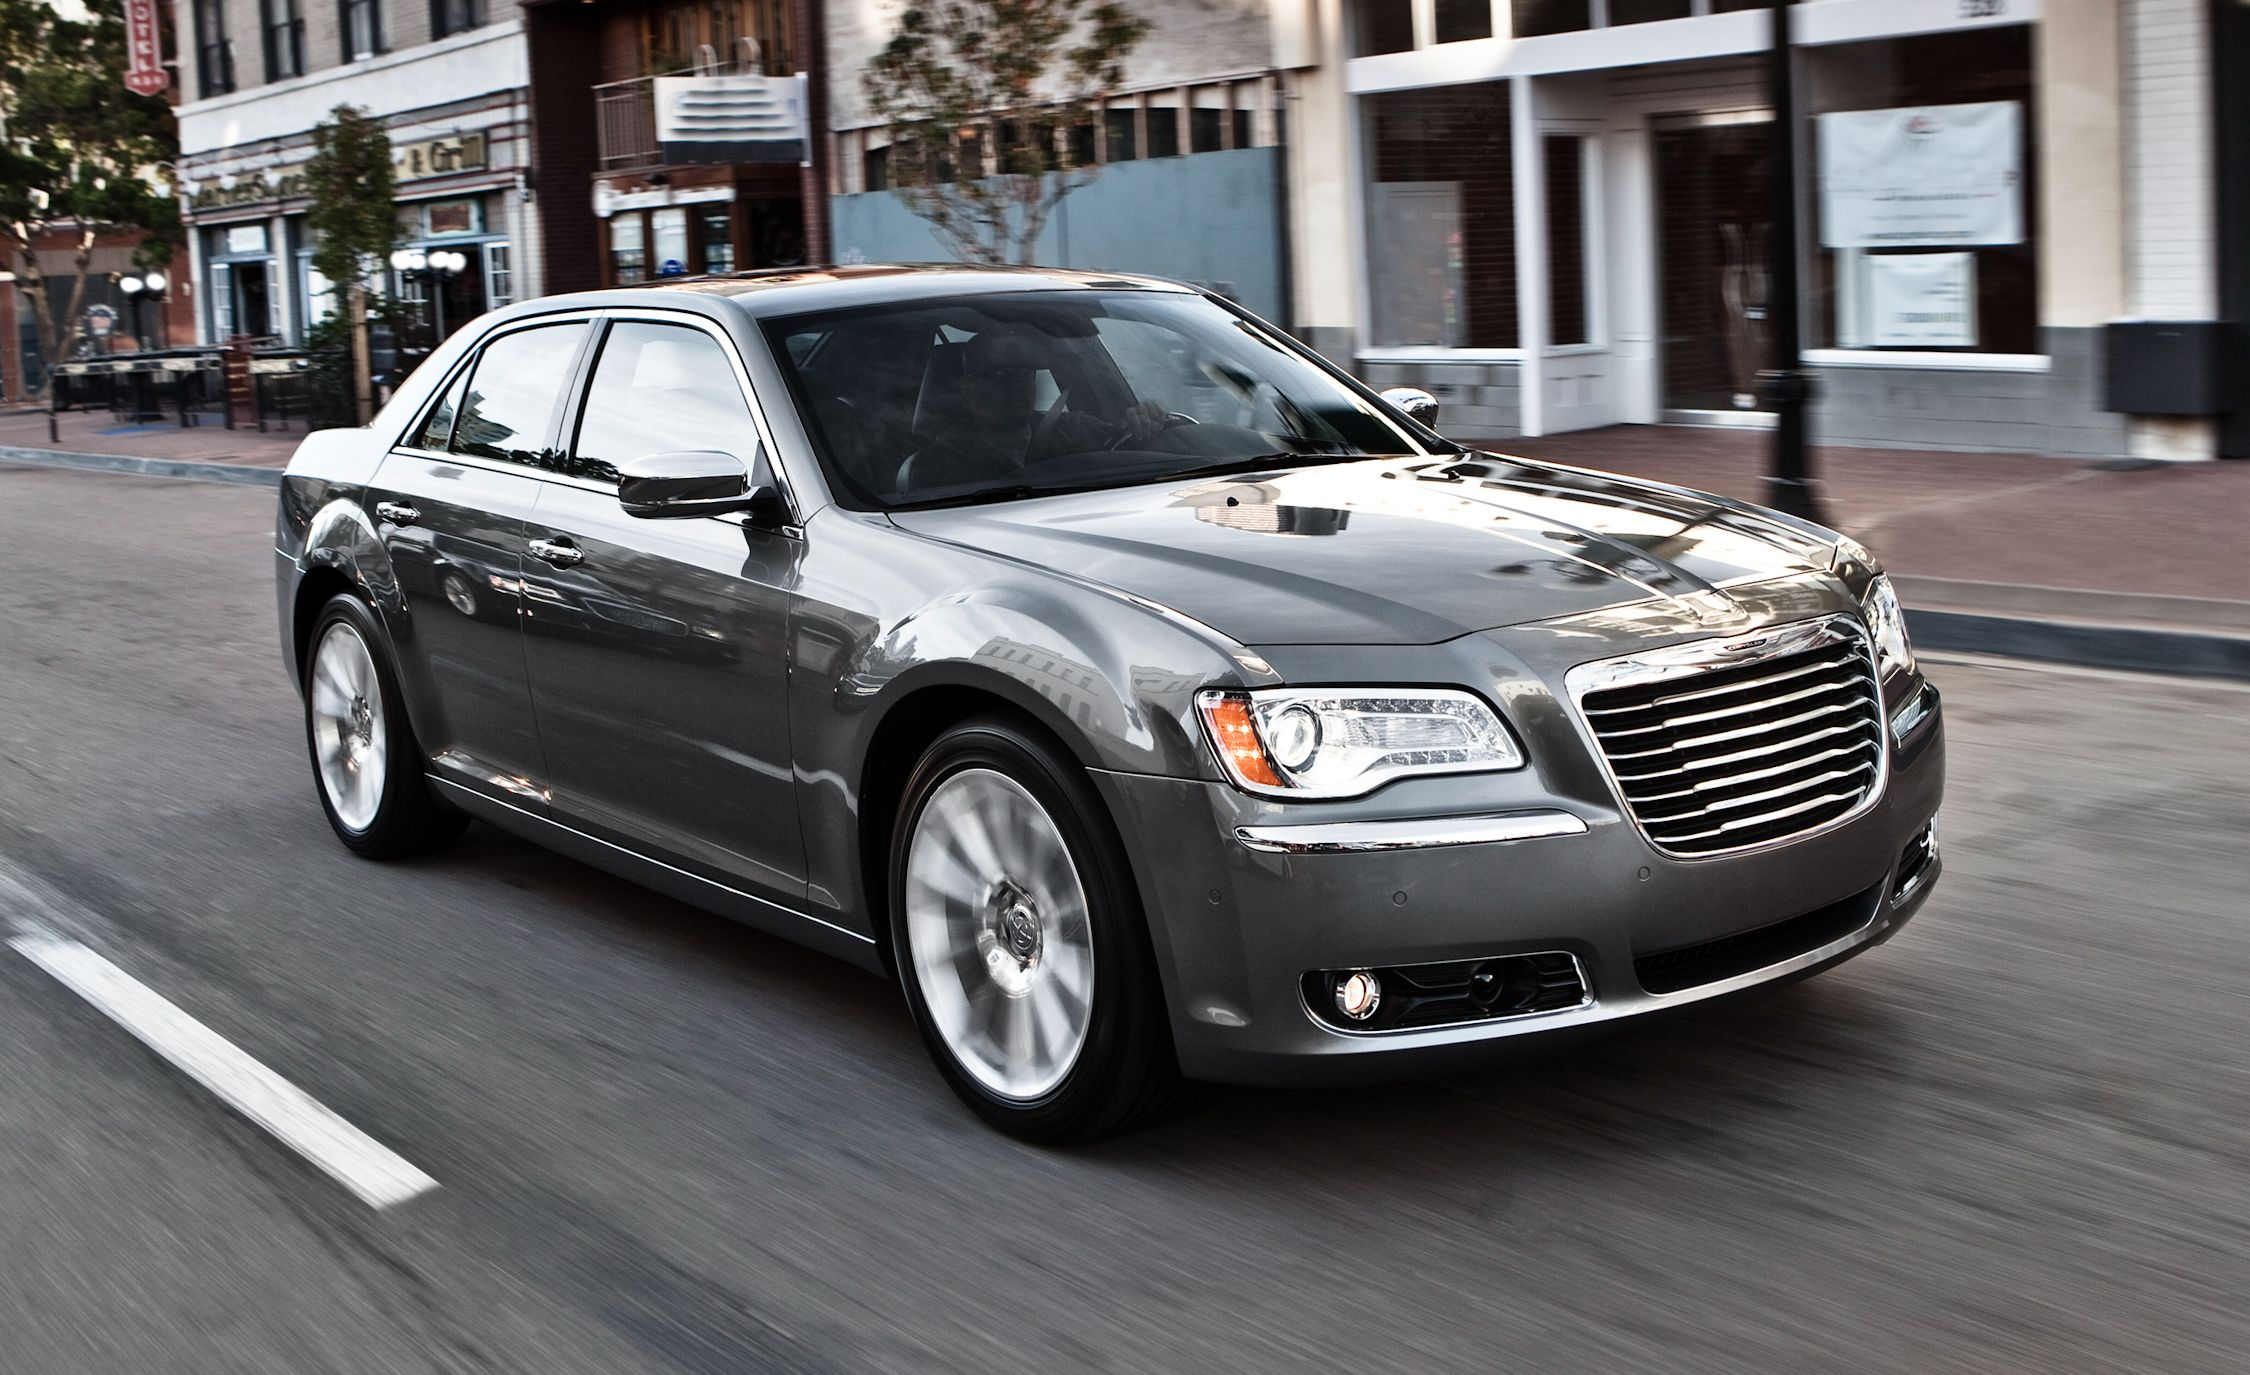 2011 chrysler 300 300c review car and driver - Chrysler 300 interior accessories ...